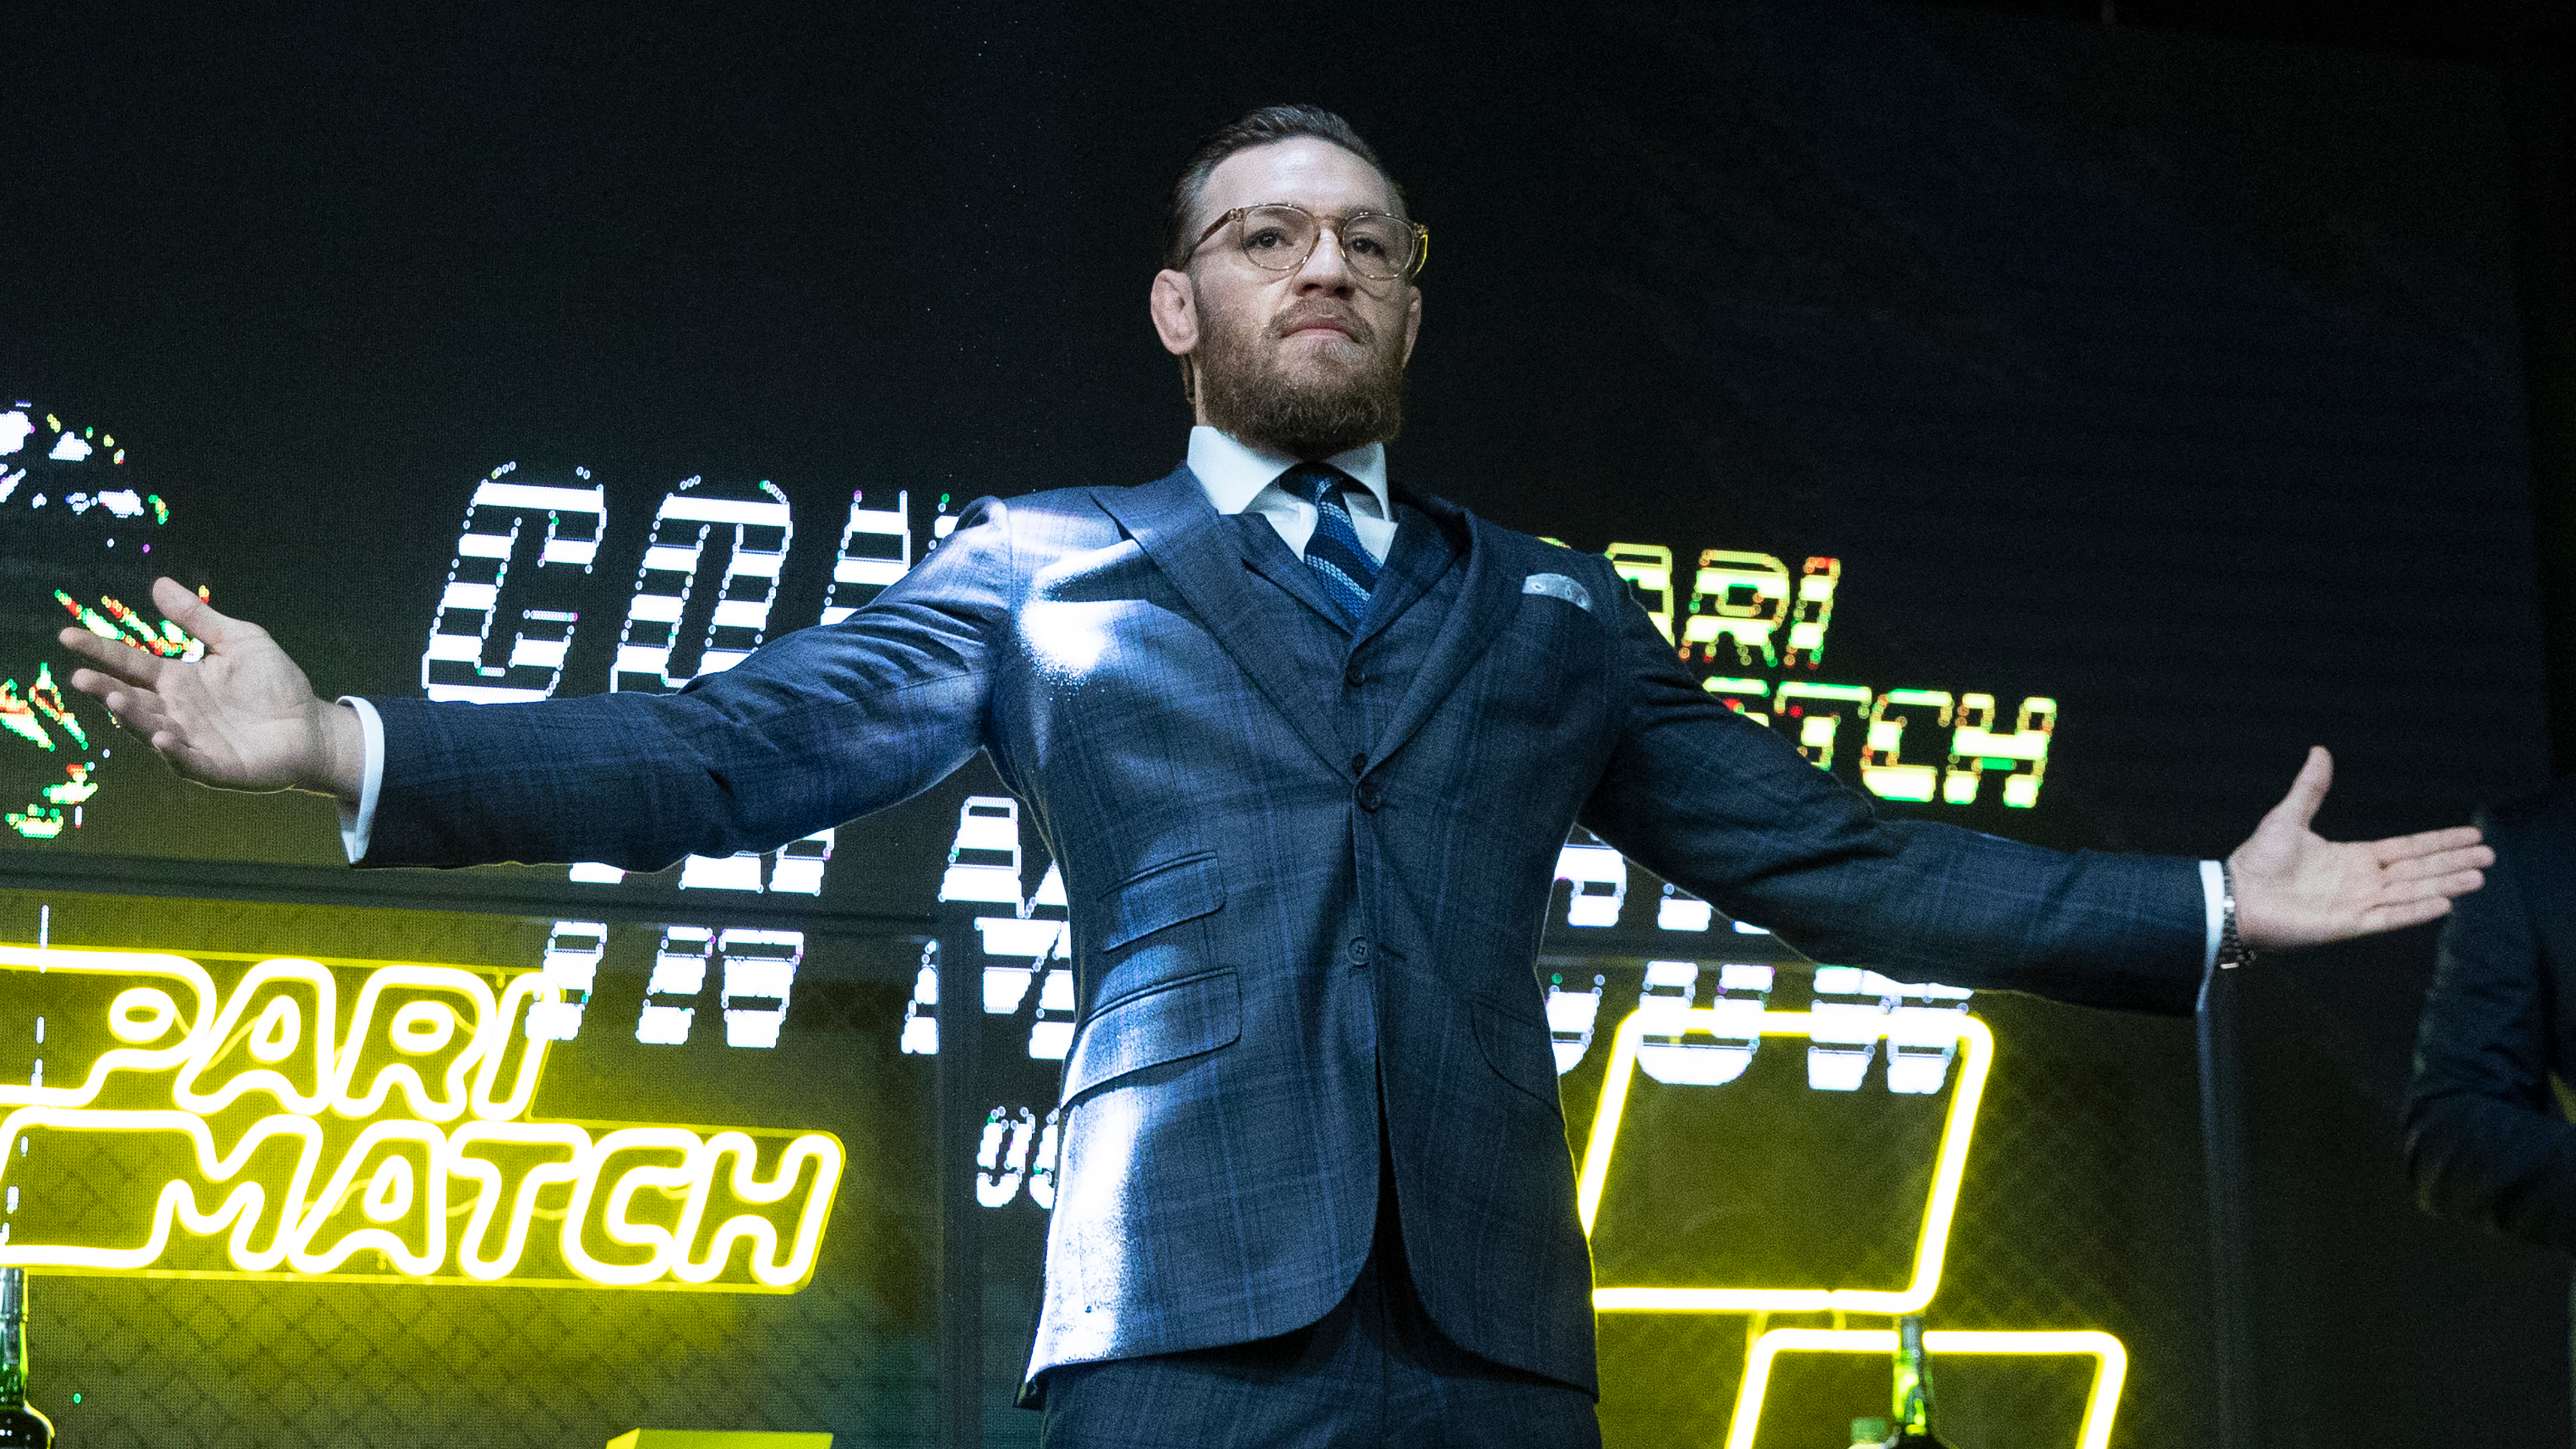 Conor Mcgregor Has Said He Wants To